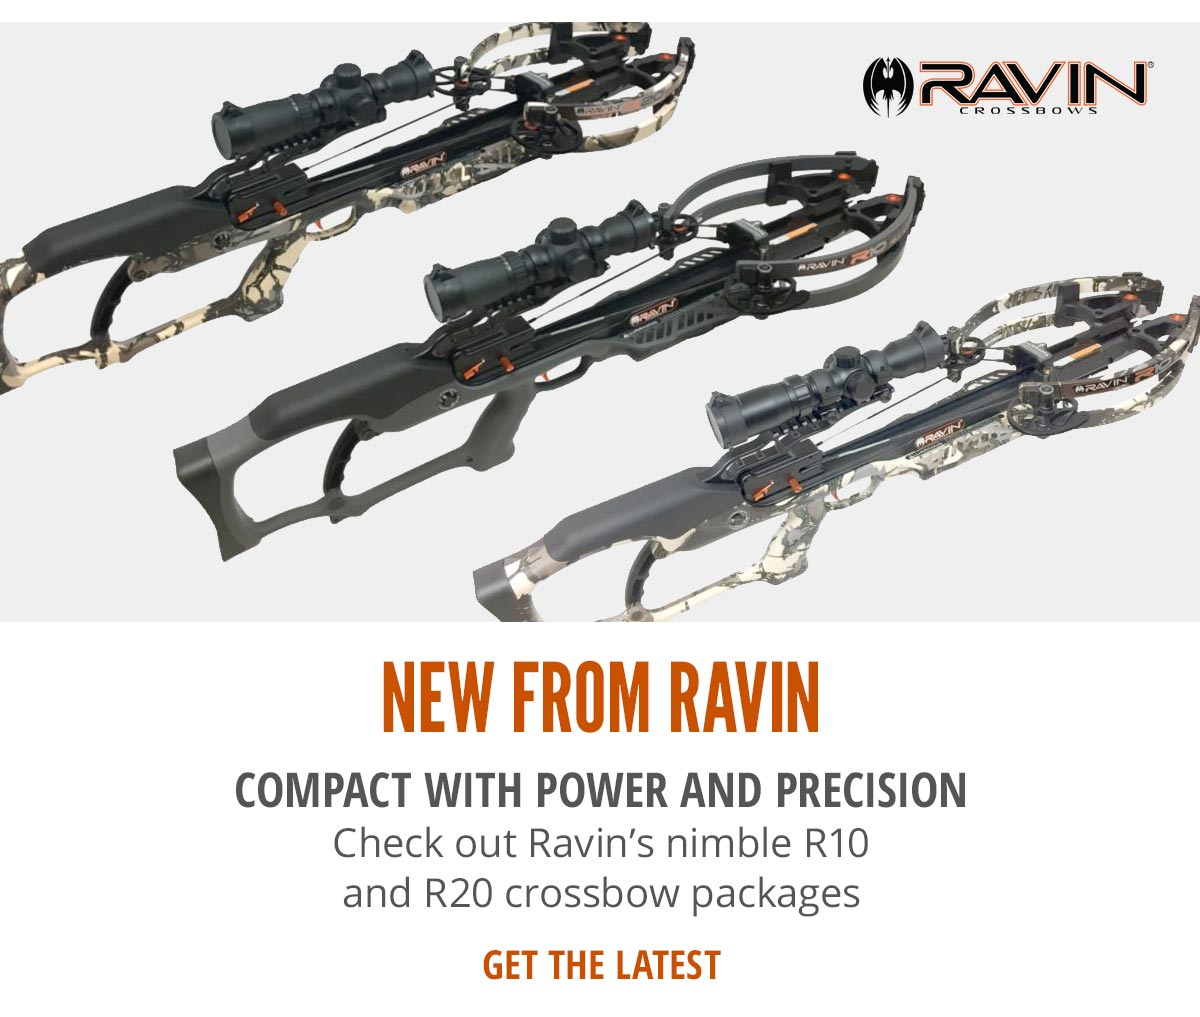 NEW Ravin Crossbow Packages